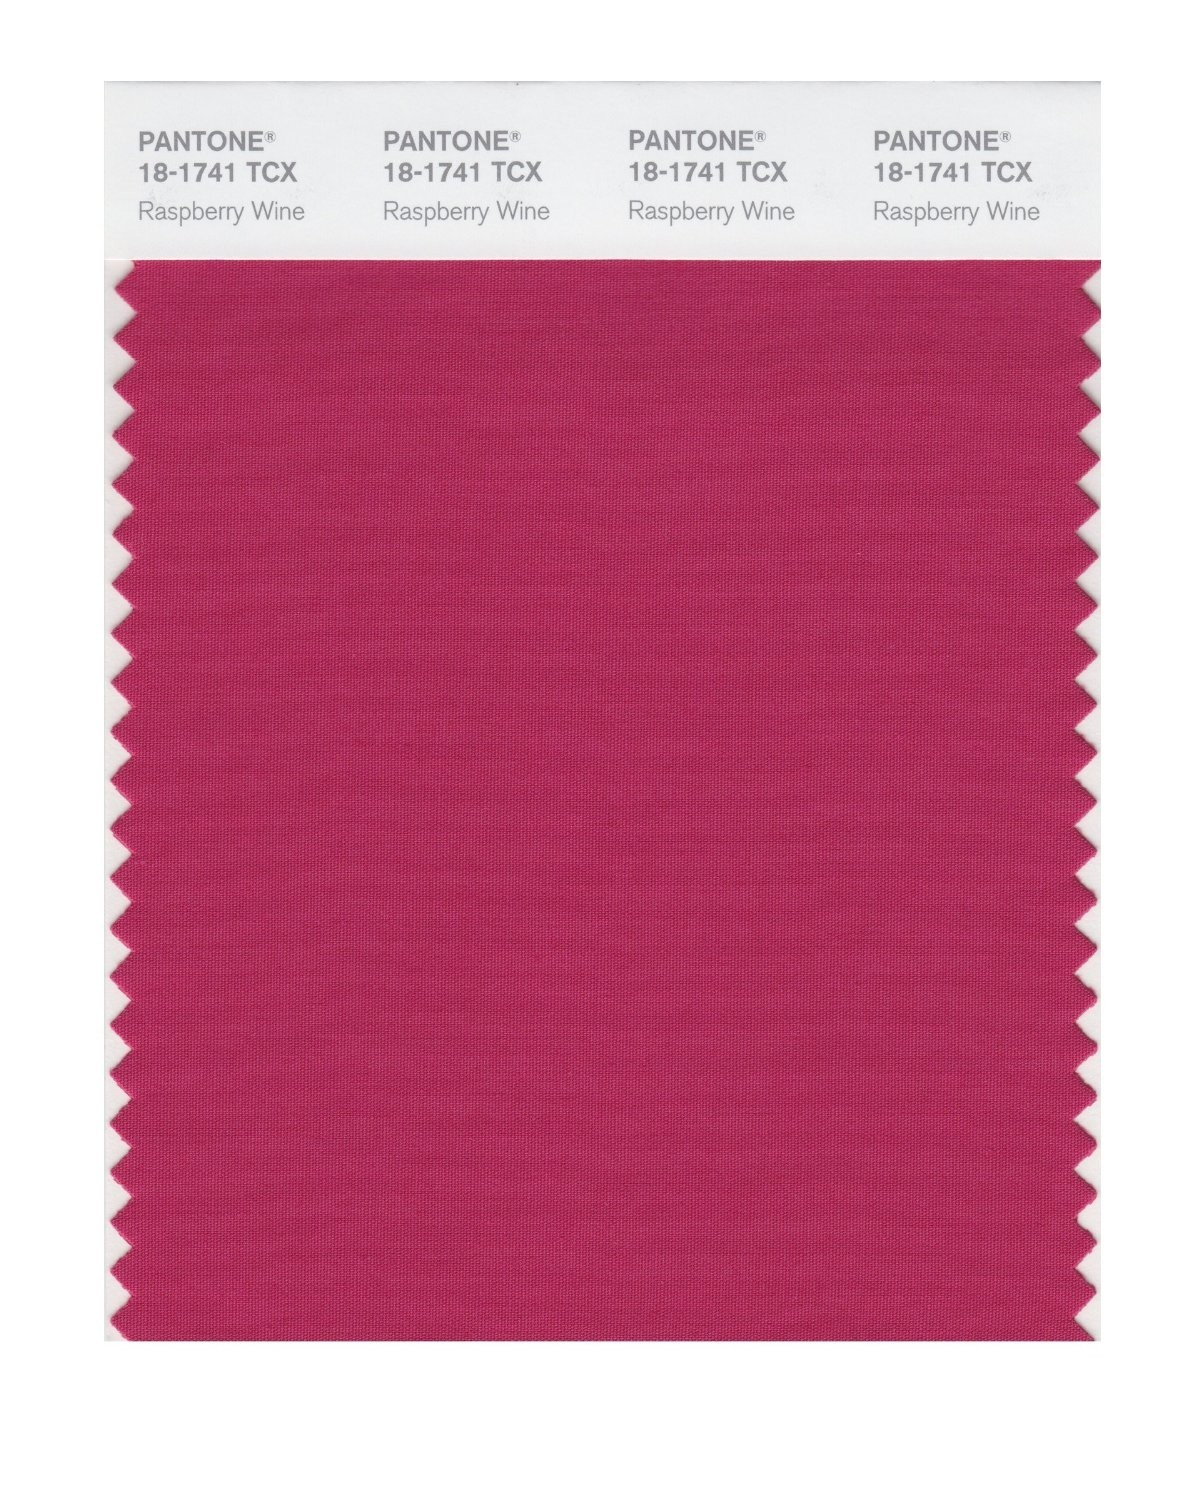 Pantone 18-1741 TCX Swatch Card Raspberry Wine